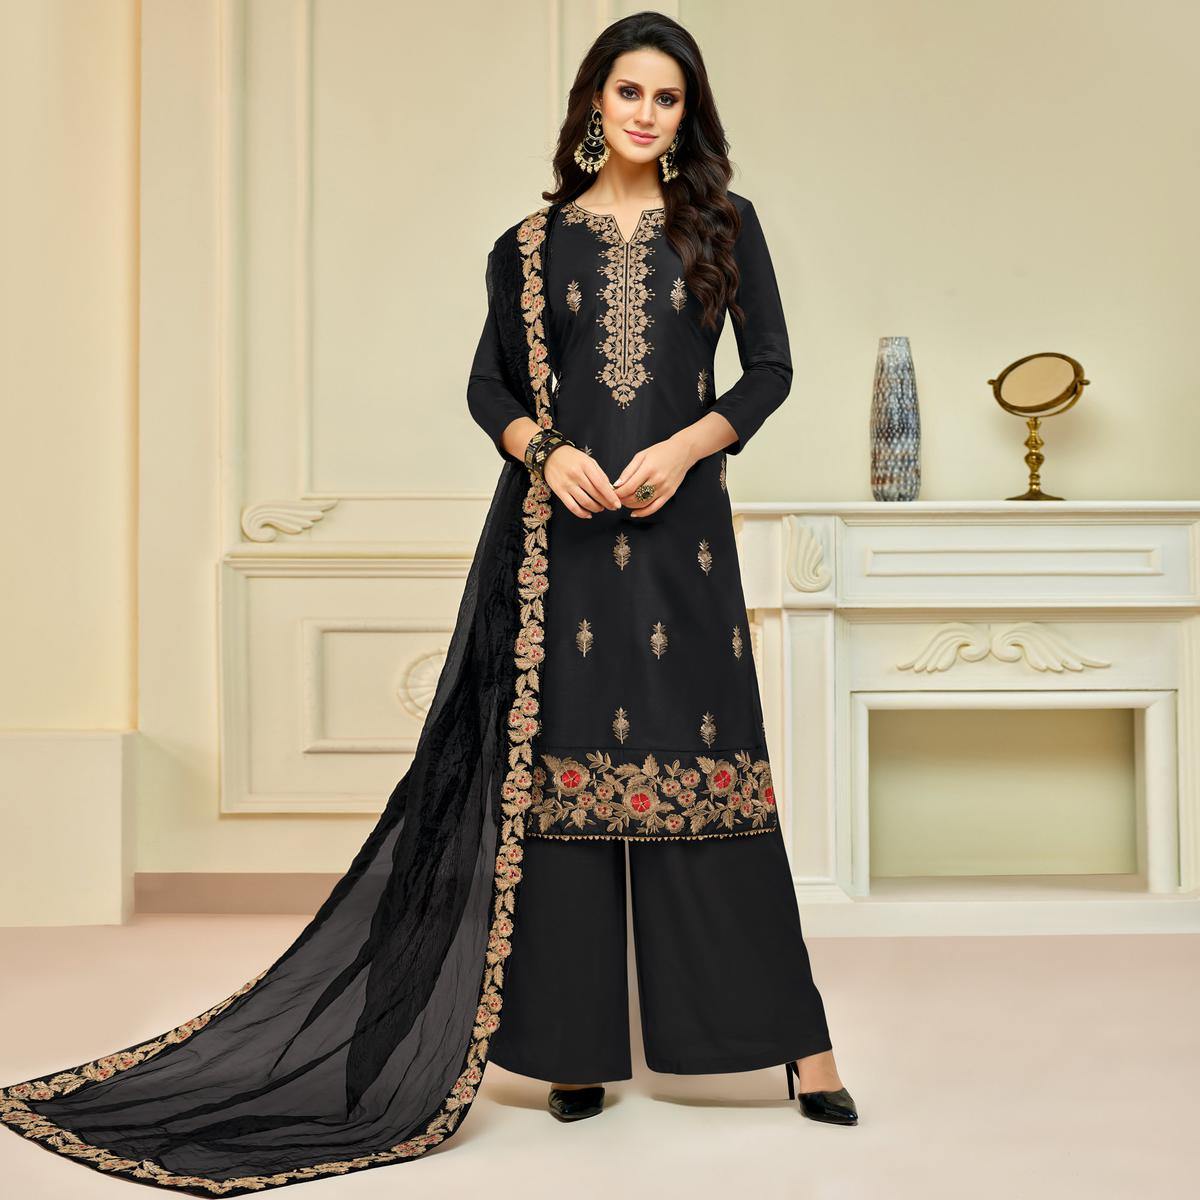 36def44147 Buy Flaunt Black Colored Partywear Embroidered Pure Uppada Silk Palazzo Suit  for women's online India, Best Prices, Reviews - Peachmode